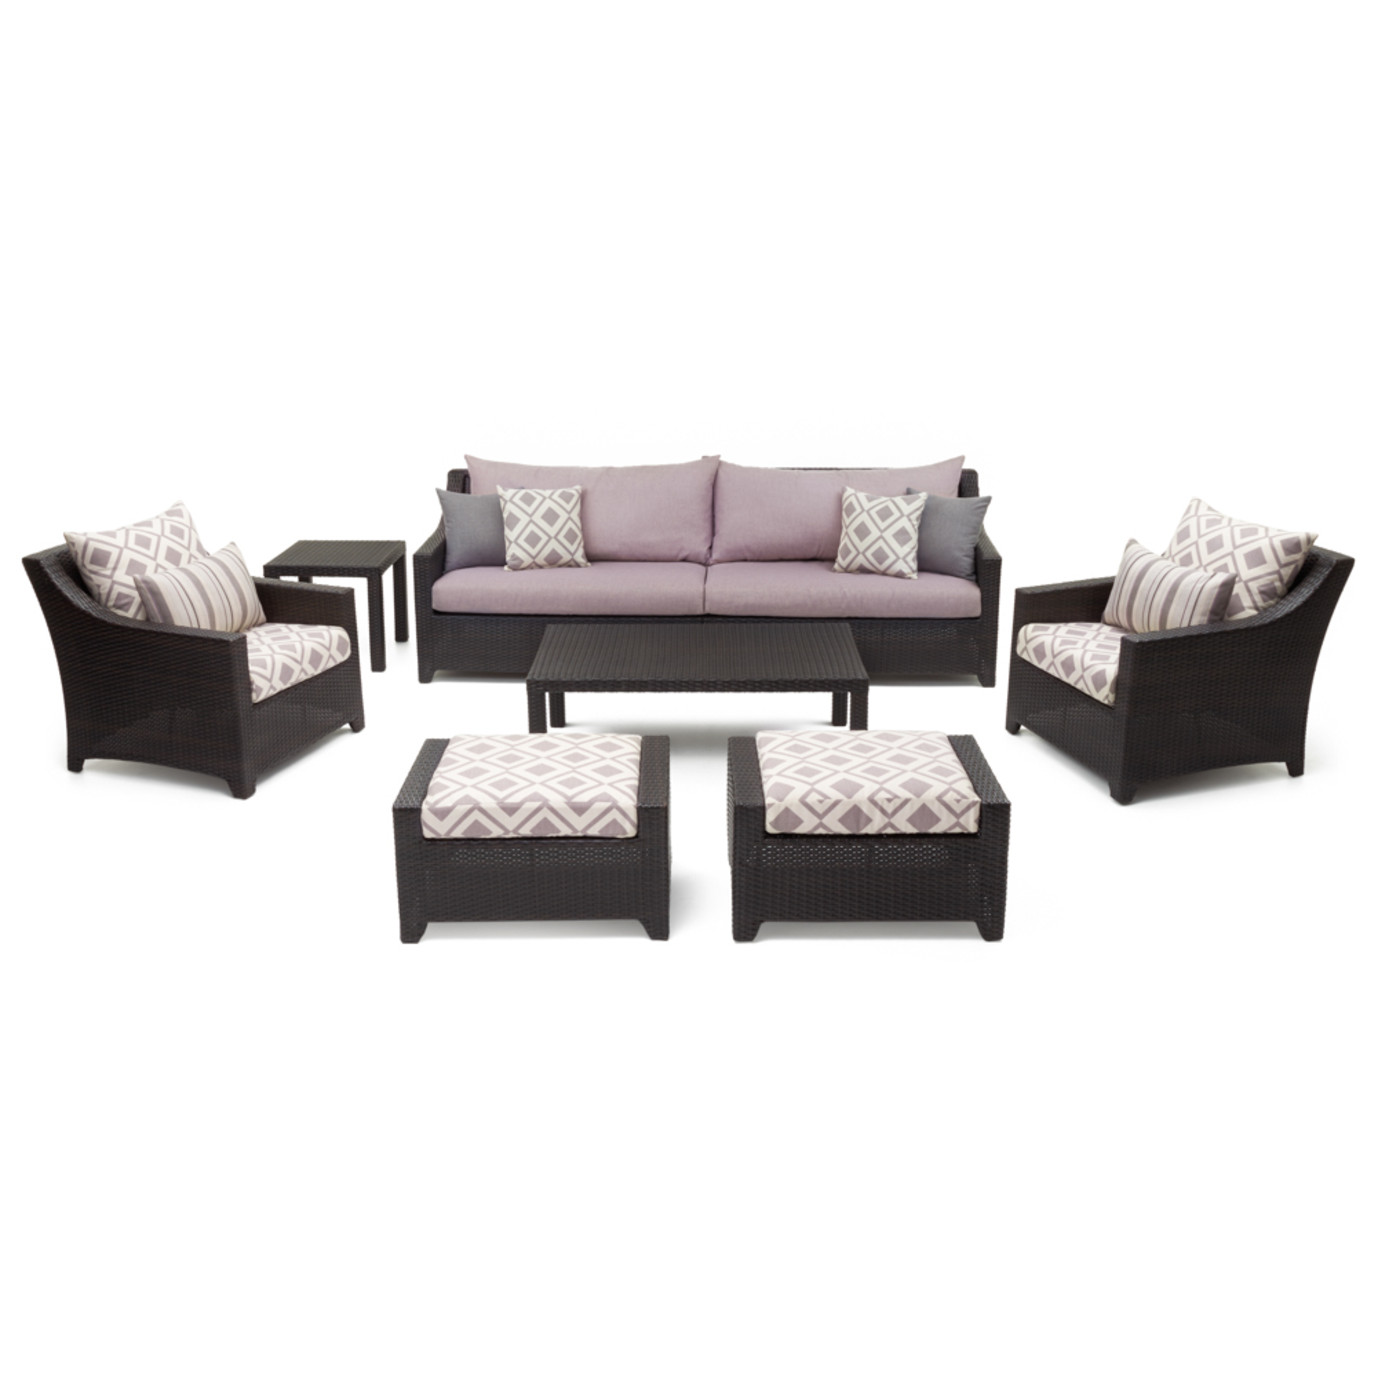 Deco™ 8 Piece Sofa & Club Chair Set - Wisteria Lavender